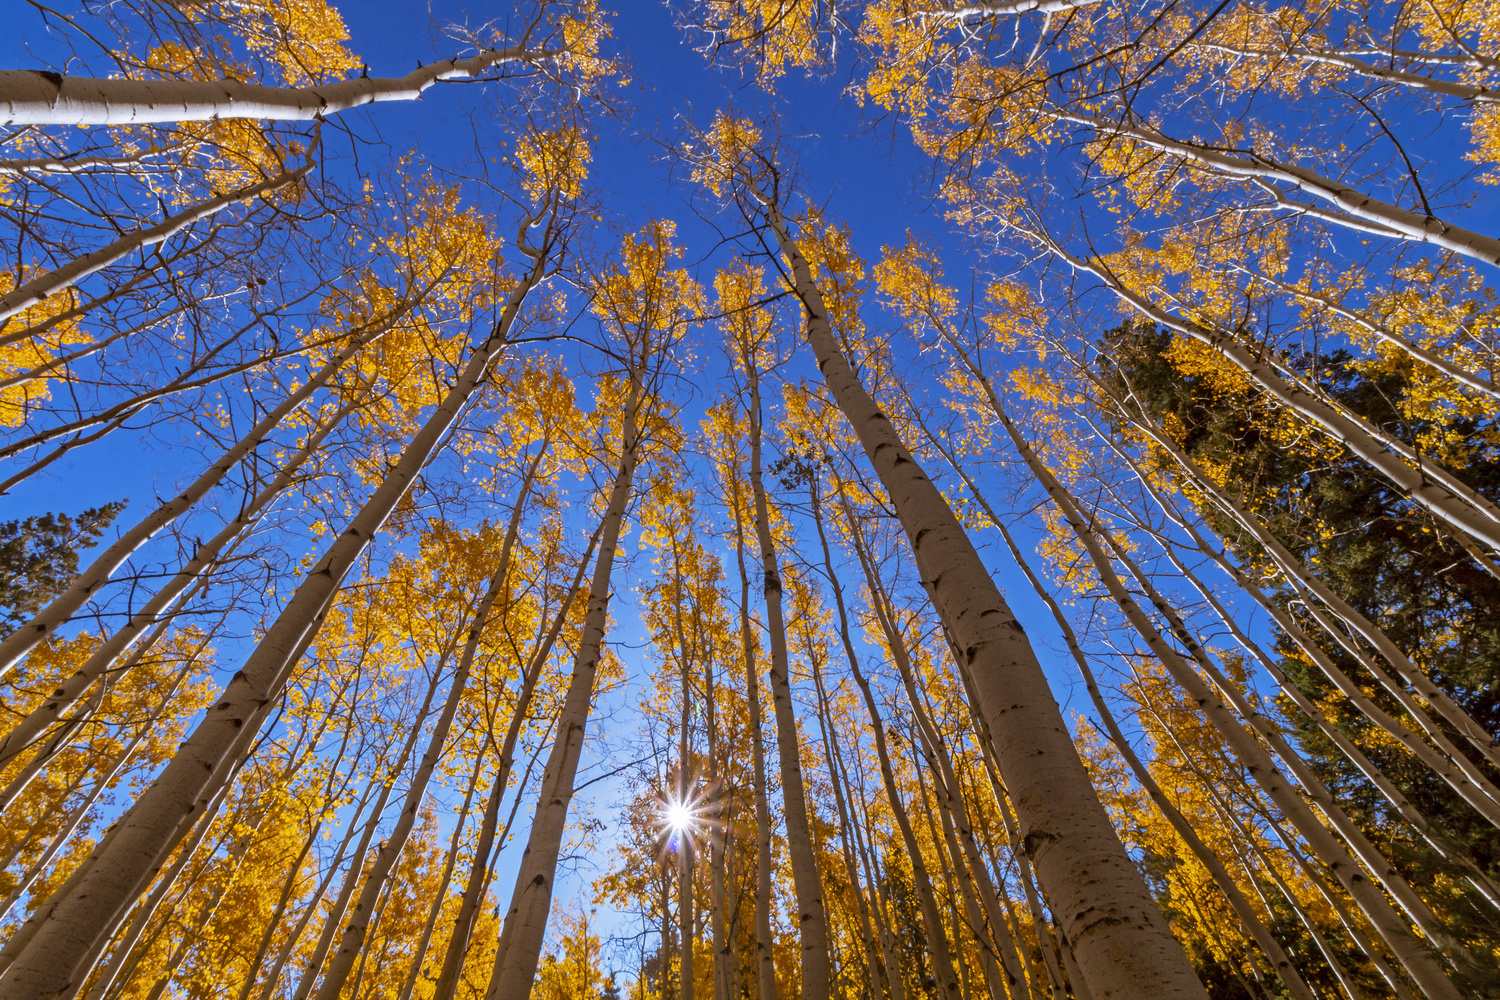 Aspen Trees Soaring Into The Sky During Fall In Flagstaff, AZ by Ray Redstone